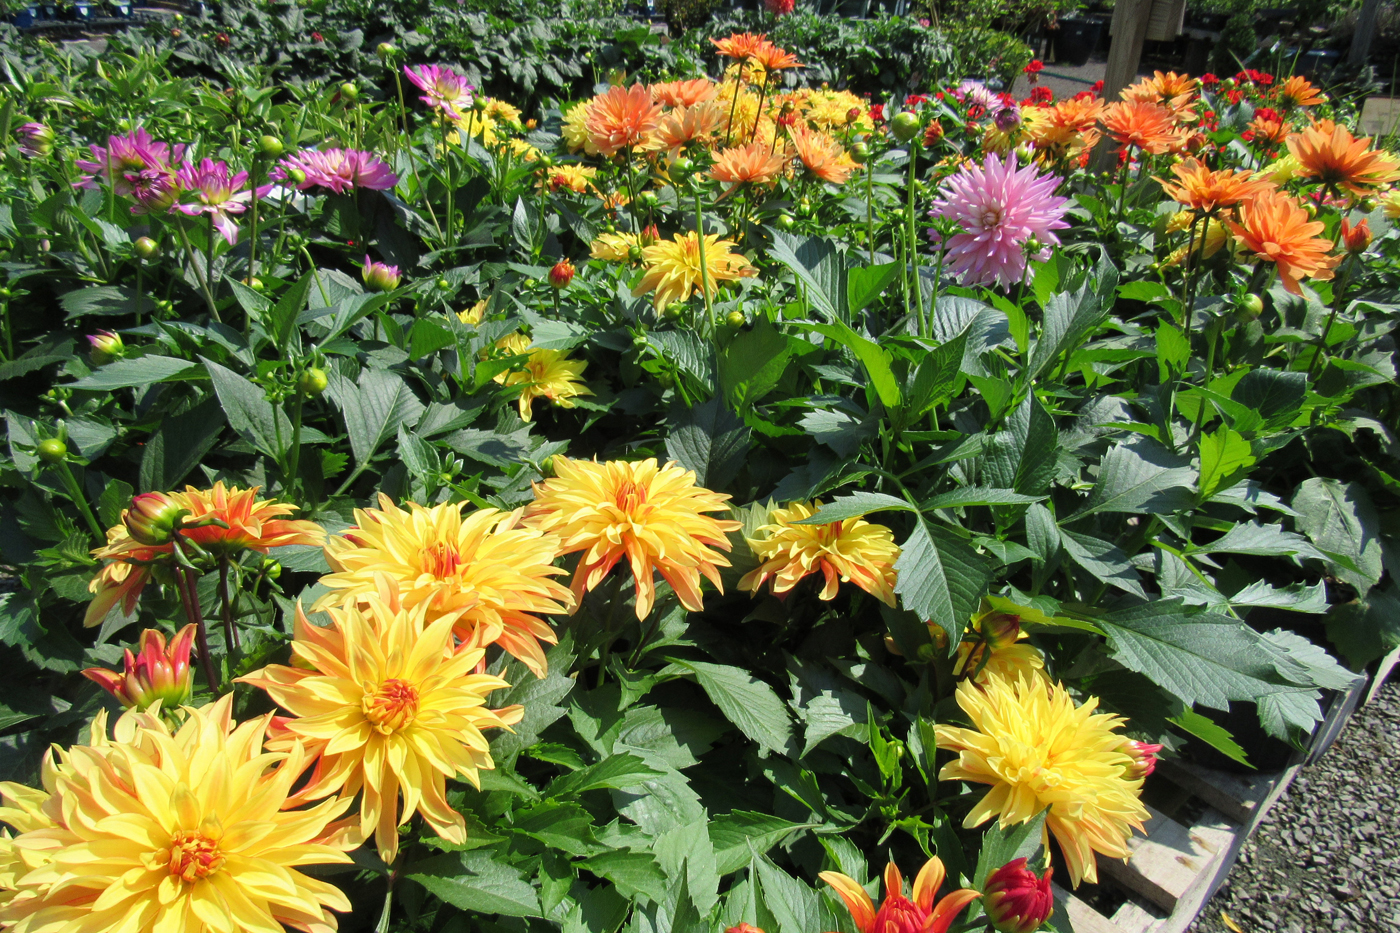 A display of flowering dahlias creates an impressive rainbow of color at Sara's. K. Gabalski photo